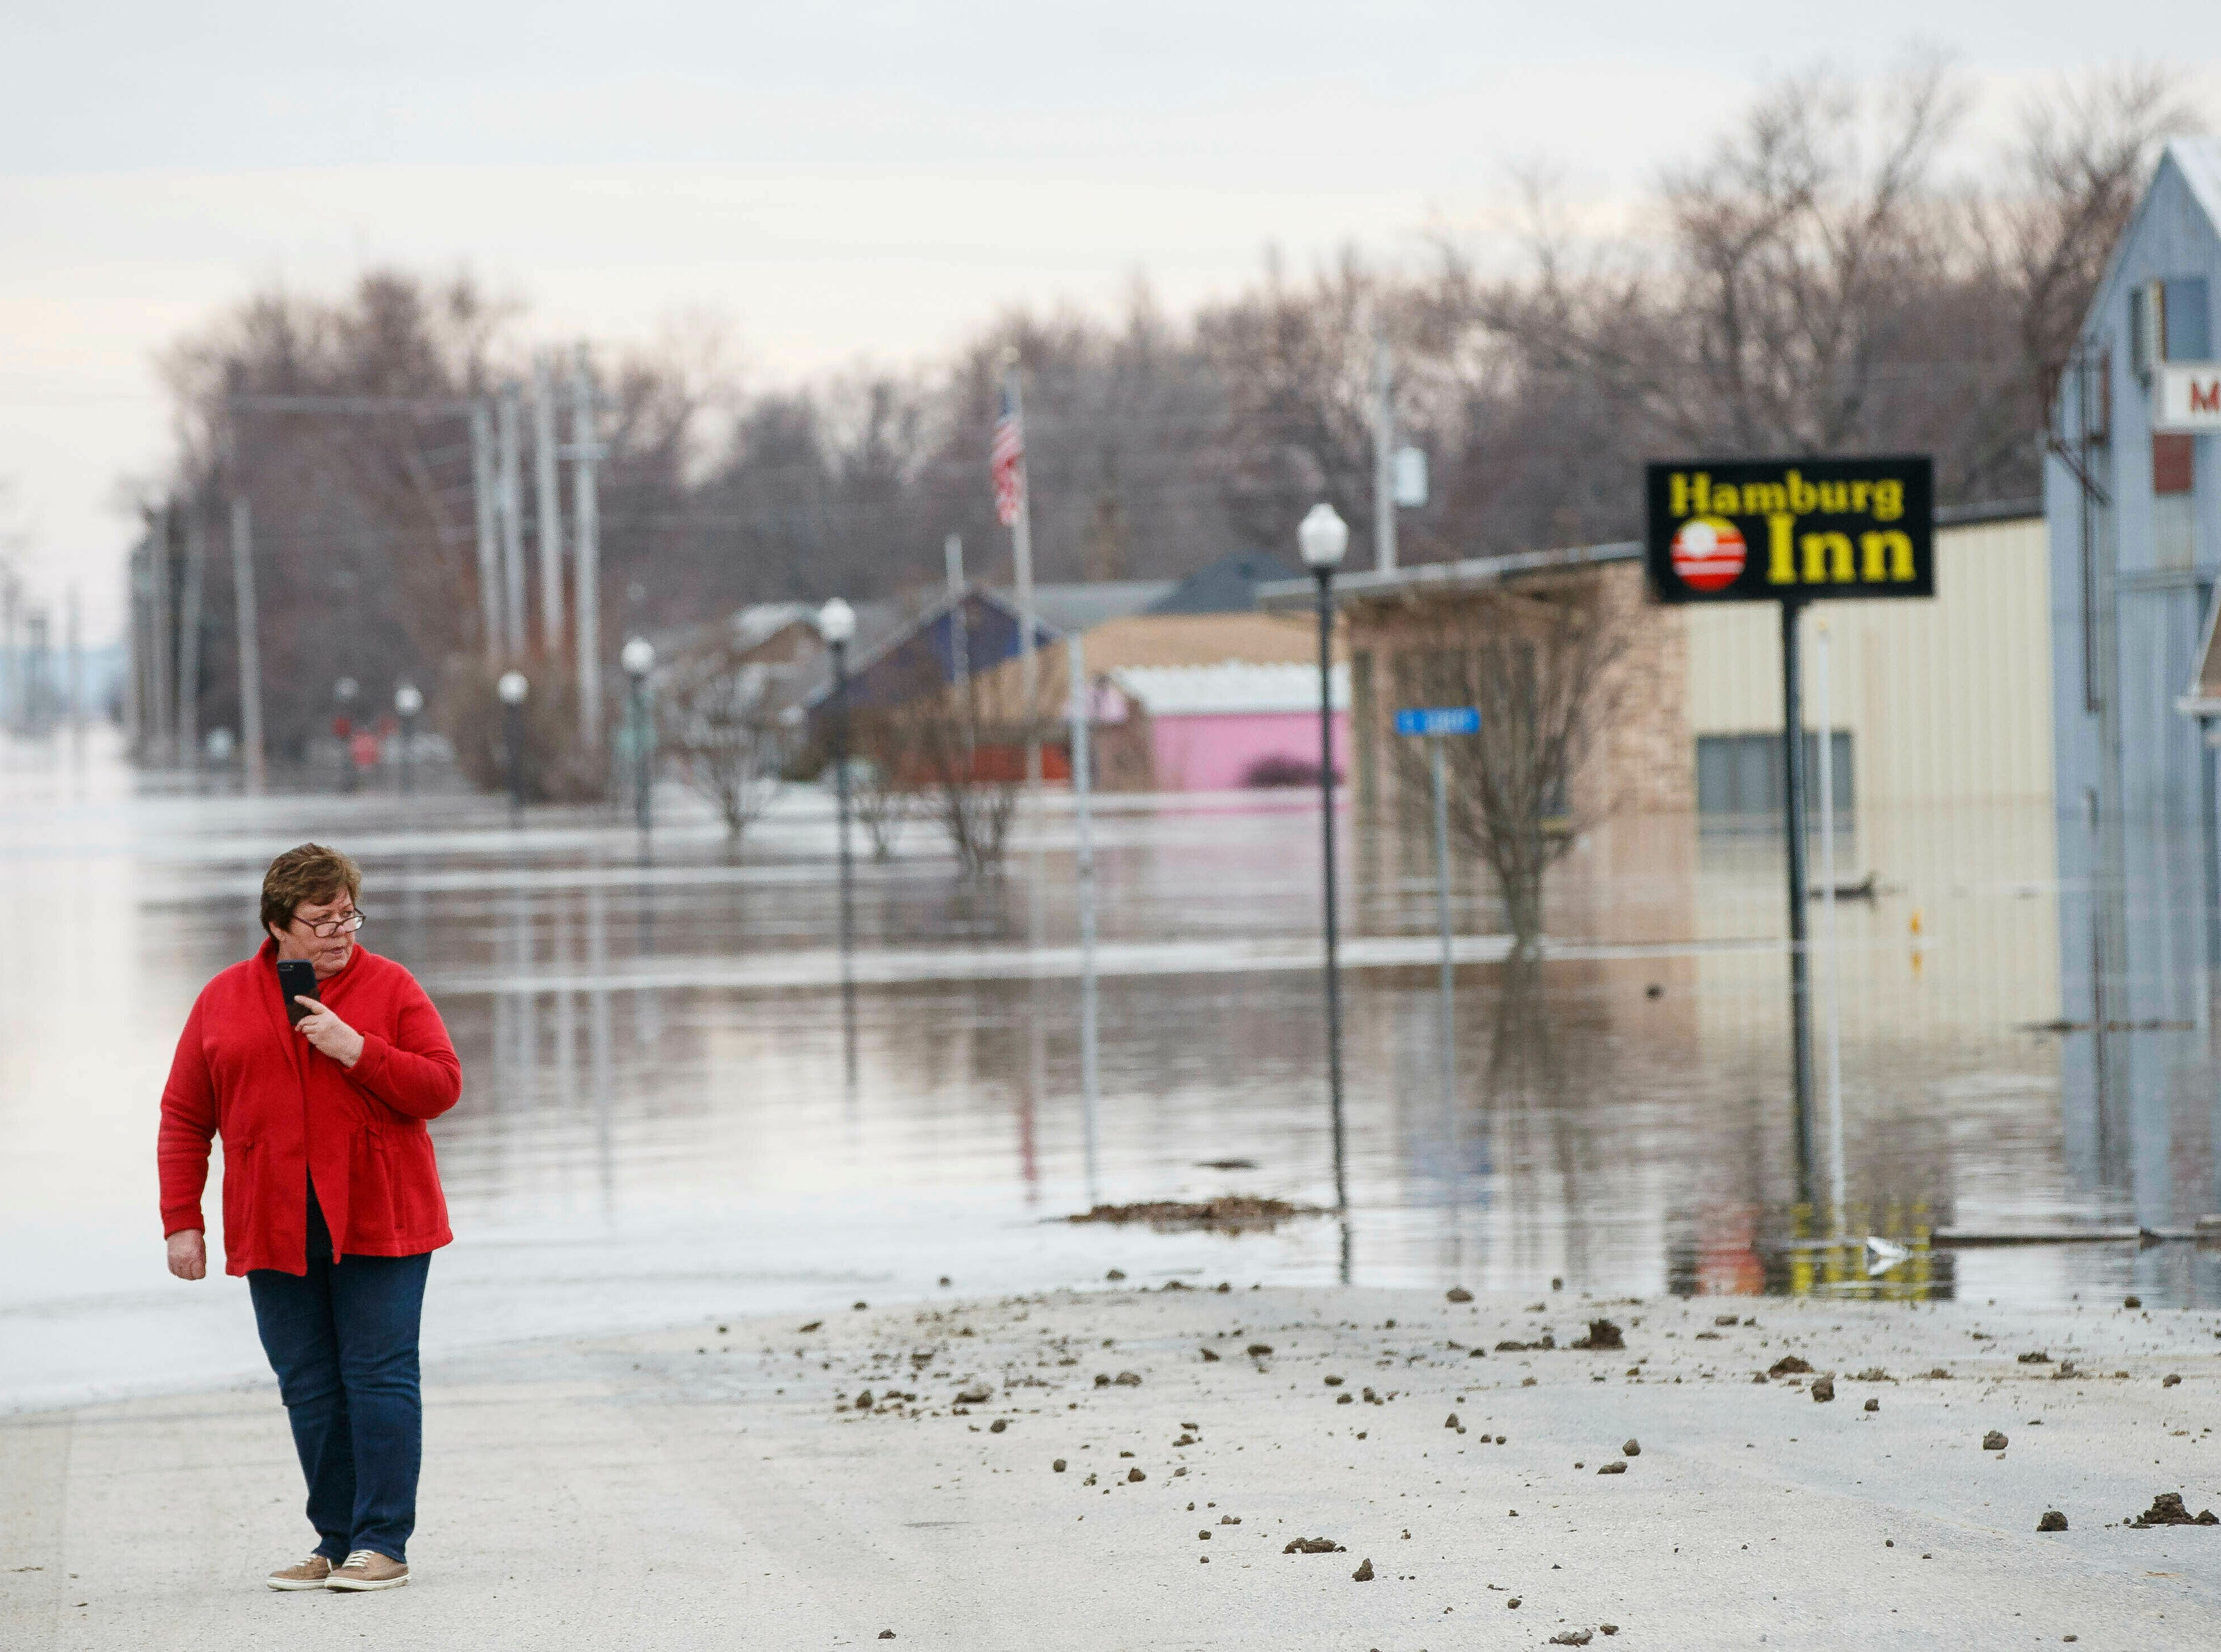 Lana Brandt checks out the rising water on the south side of Hamburg, Iowa, on March 17, 2019. Residents in parts of southwestern Iowa were forced out of their homes as a torrent of Missouri River water flowed over and through levees.